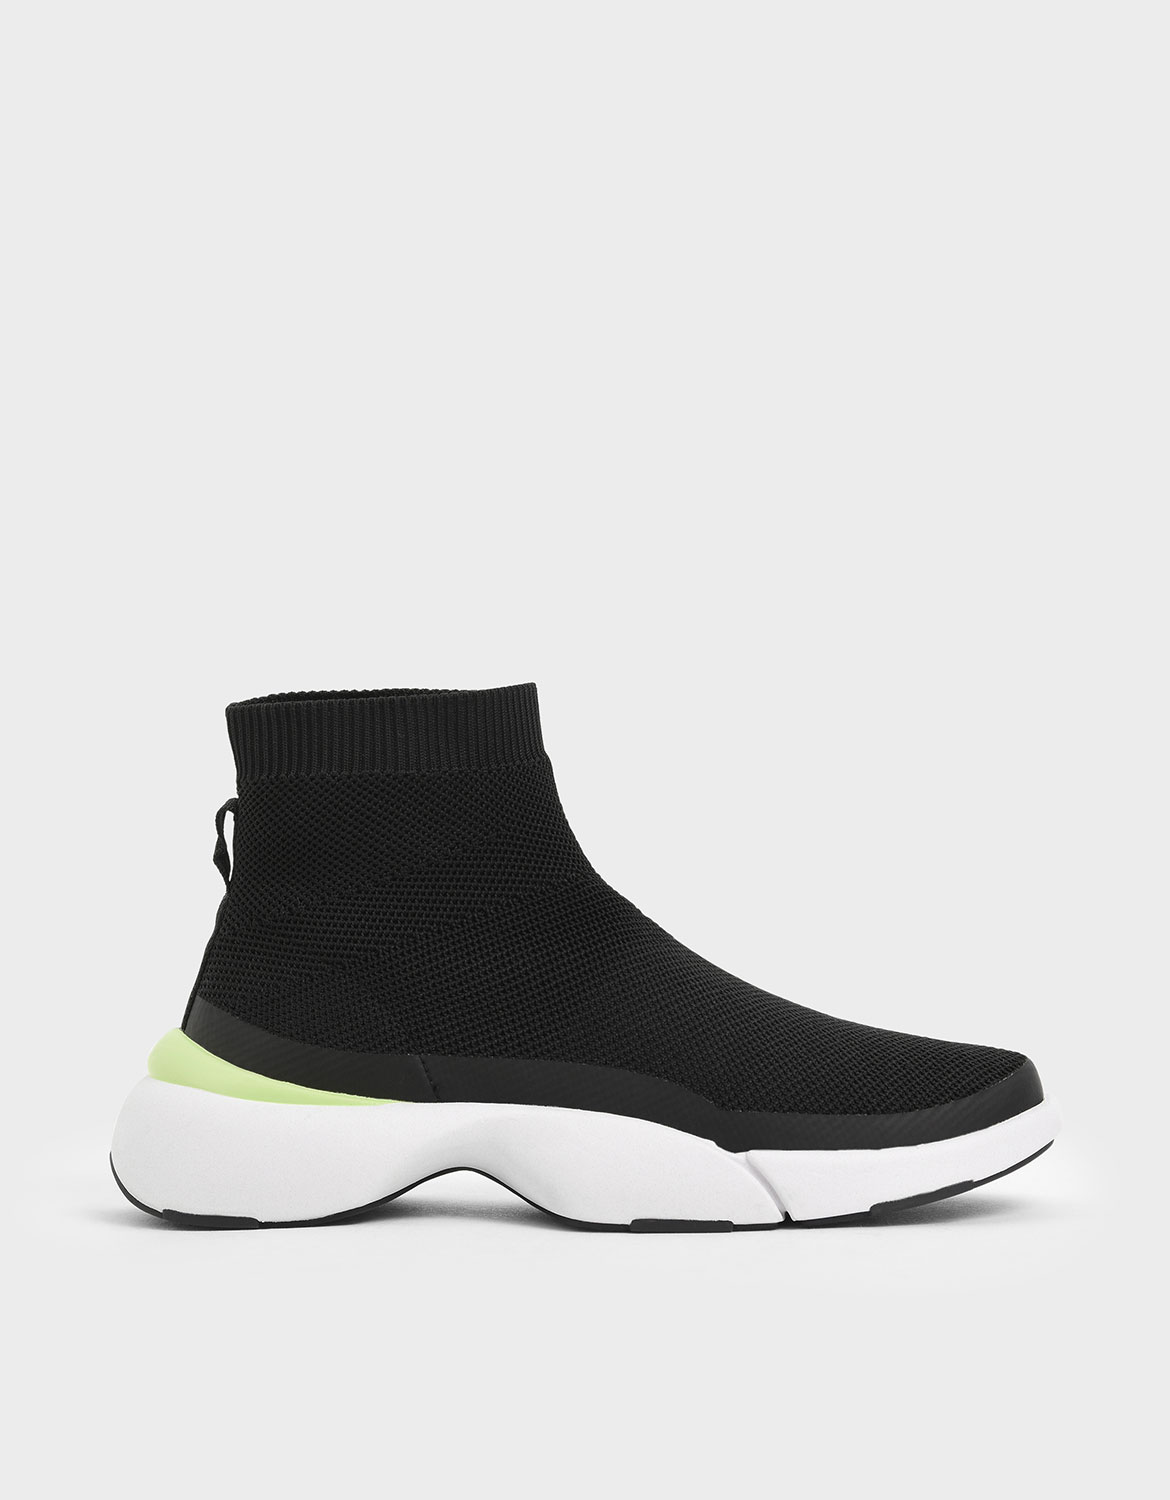 4WARD Collection: Knitted High Top Slip-On Sneakers